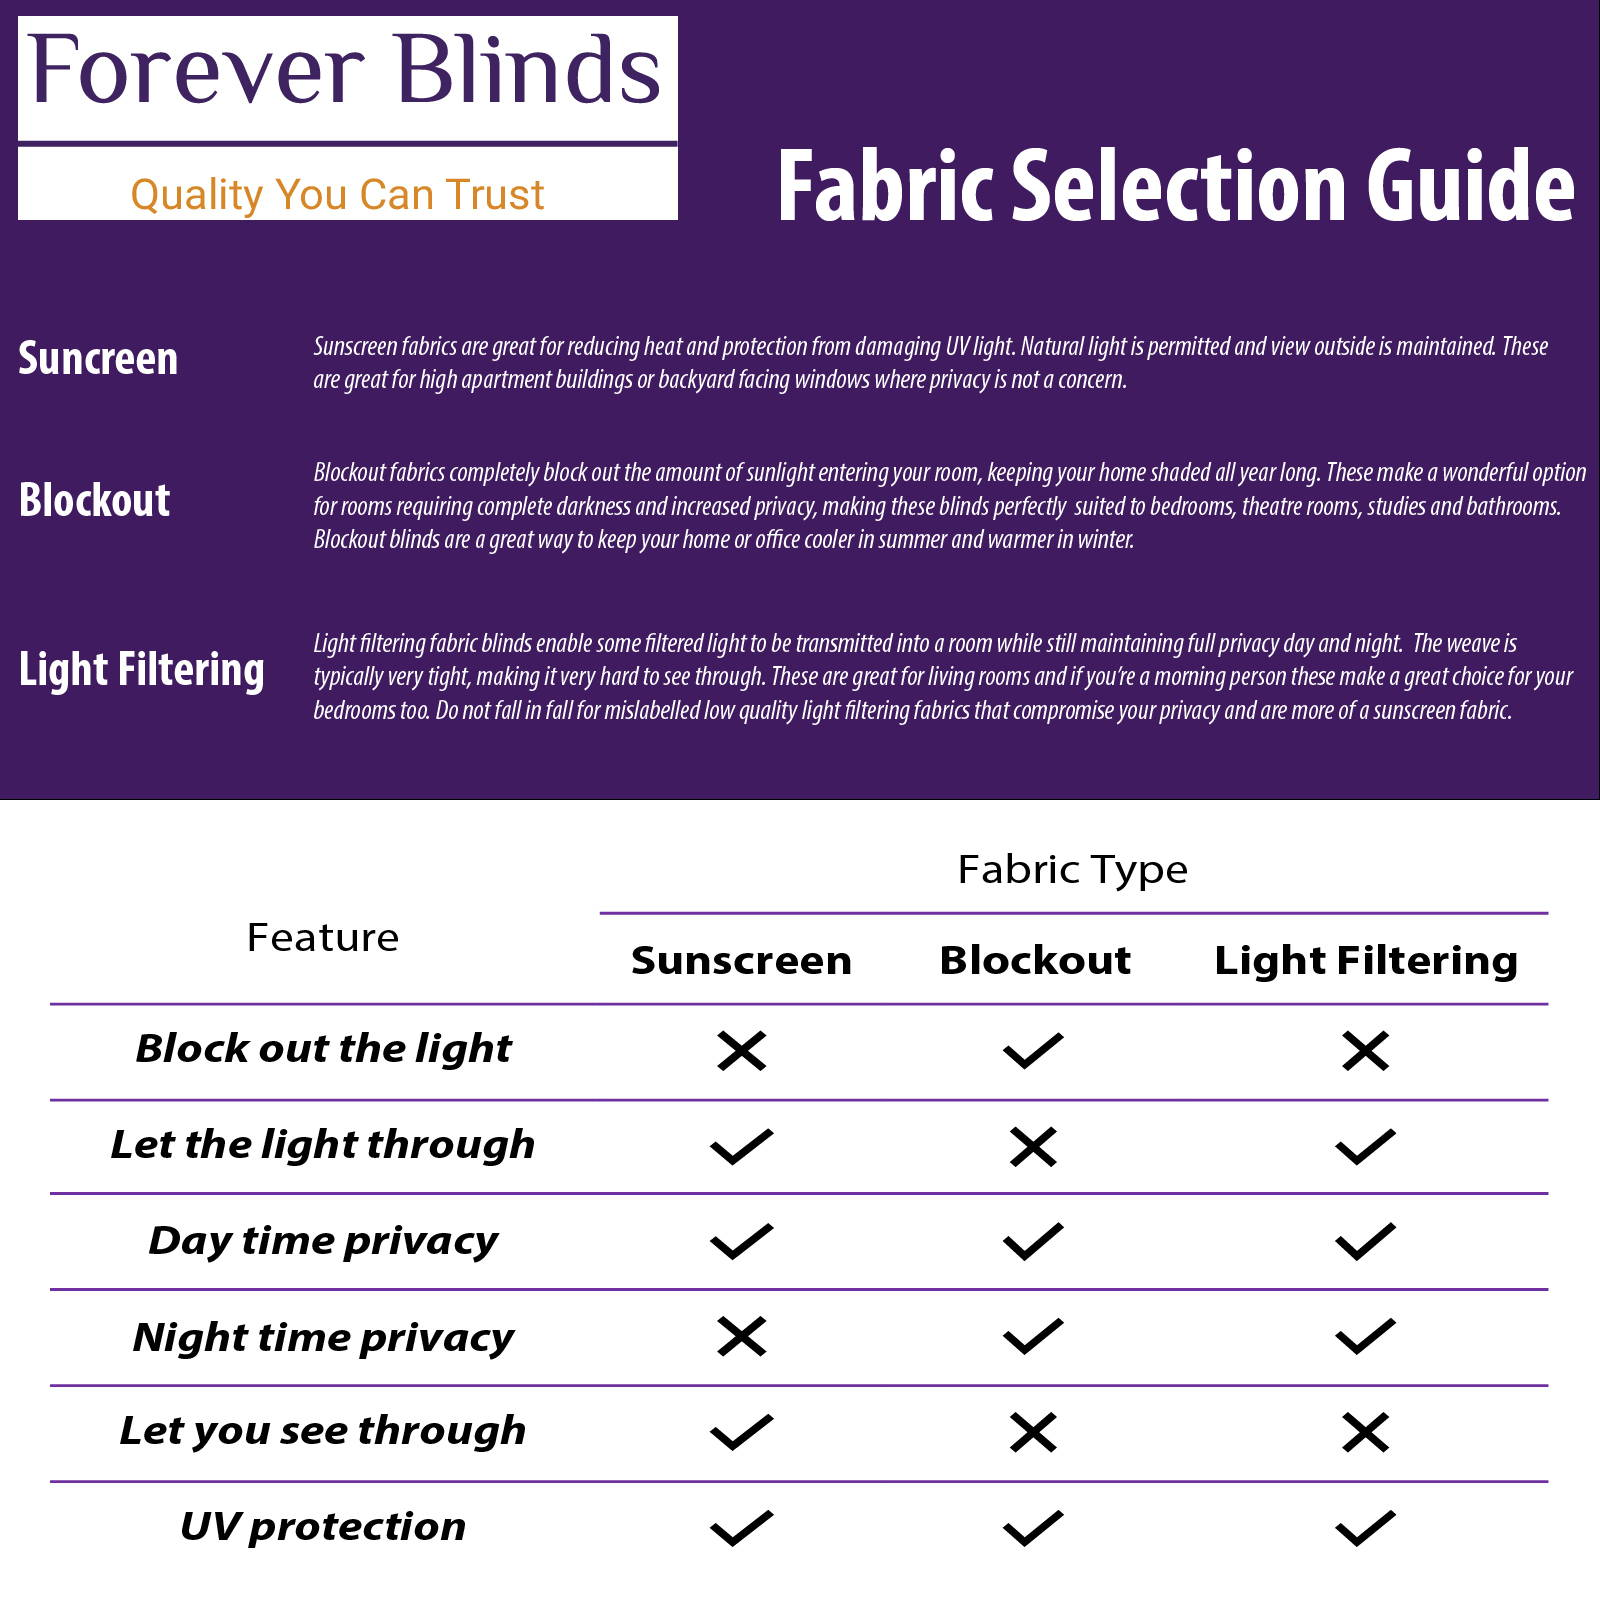 Fabric Selection Guide